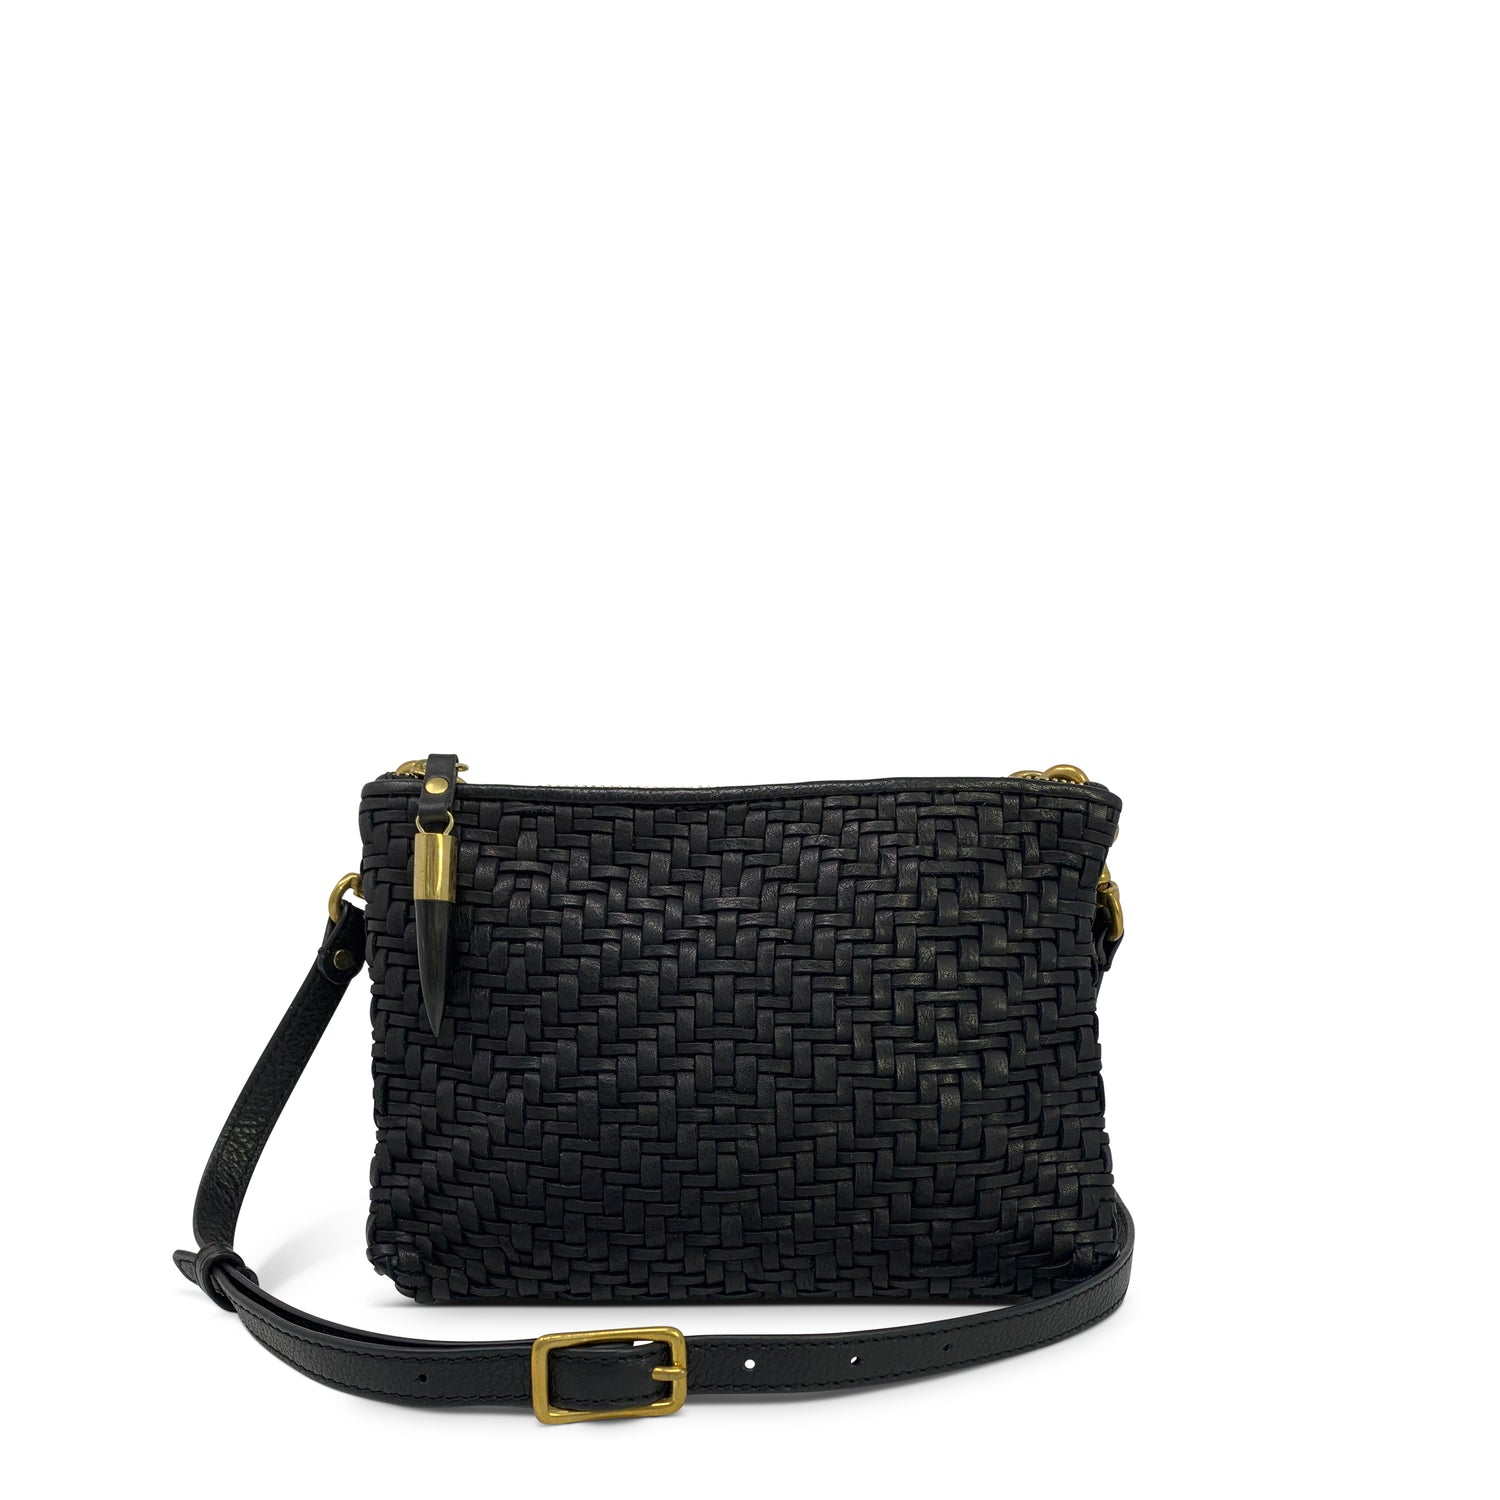 Black Woven Leather Double Zip Crossbody